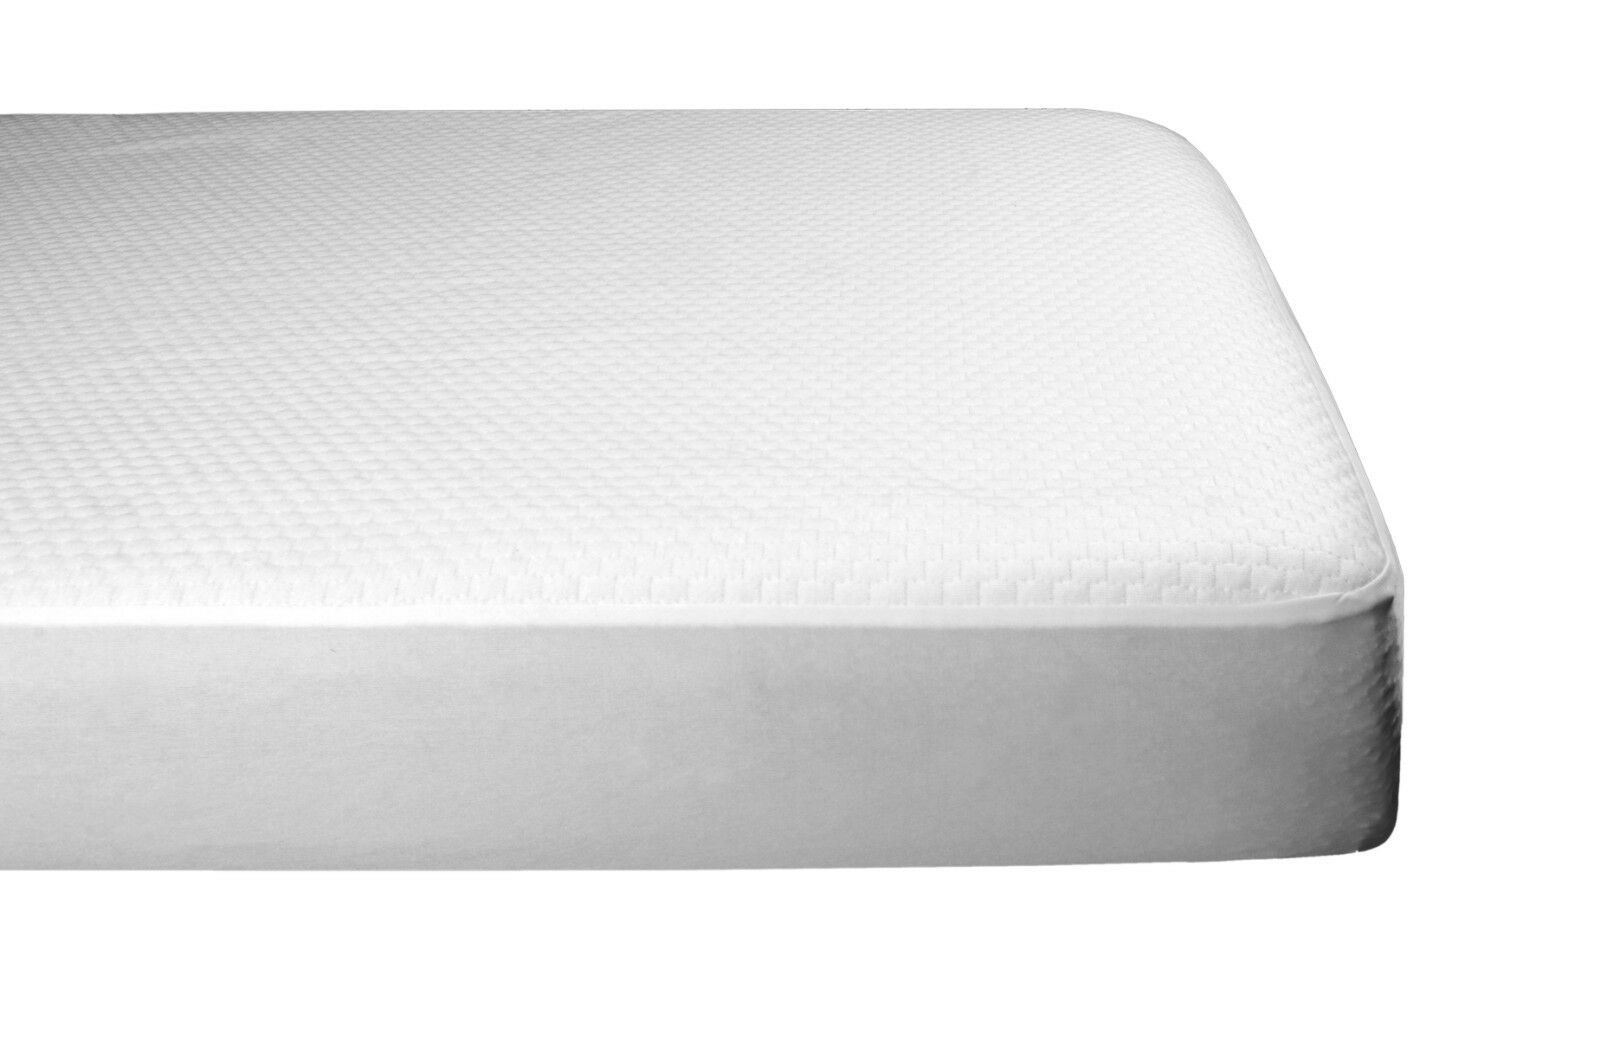 Beauty Sleep Air Layered Mattress Protector Pad Waterproof &